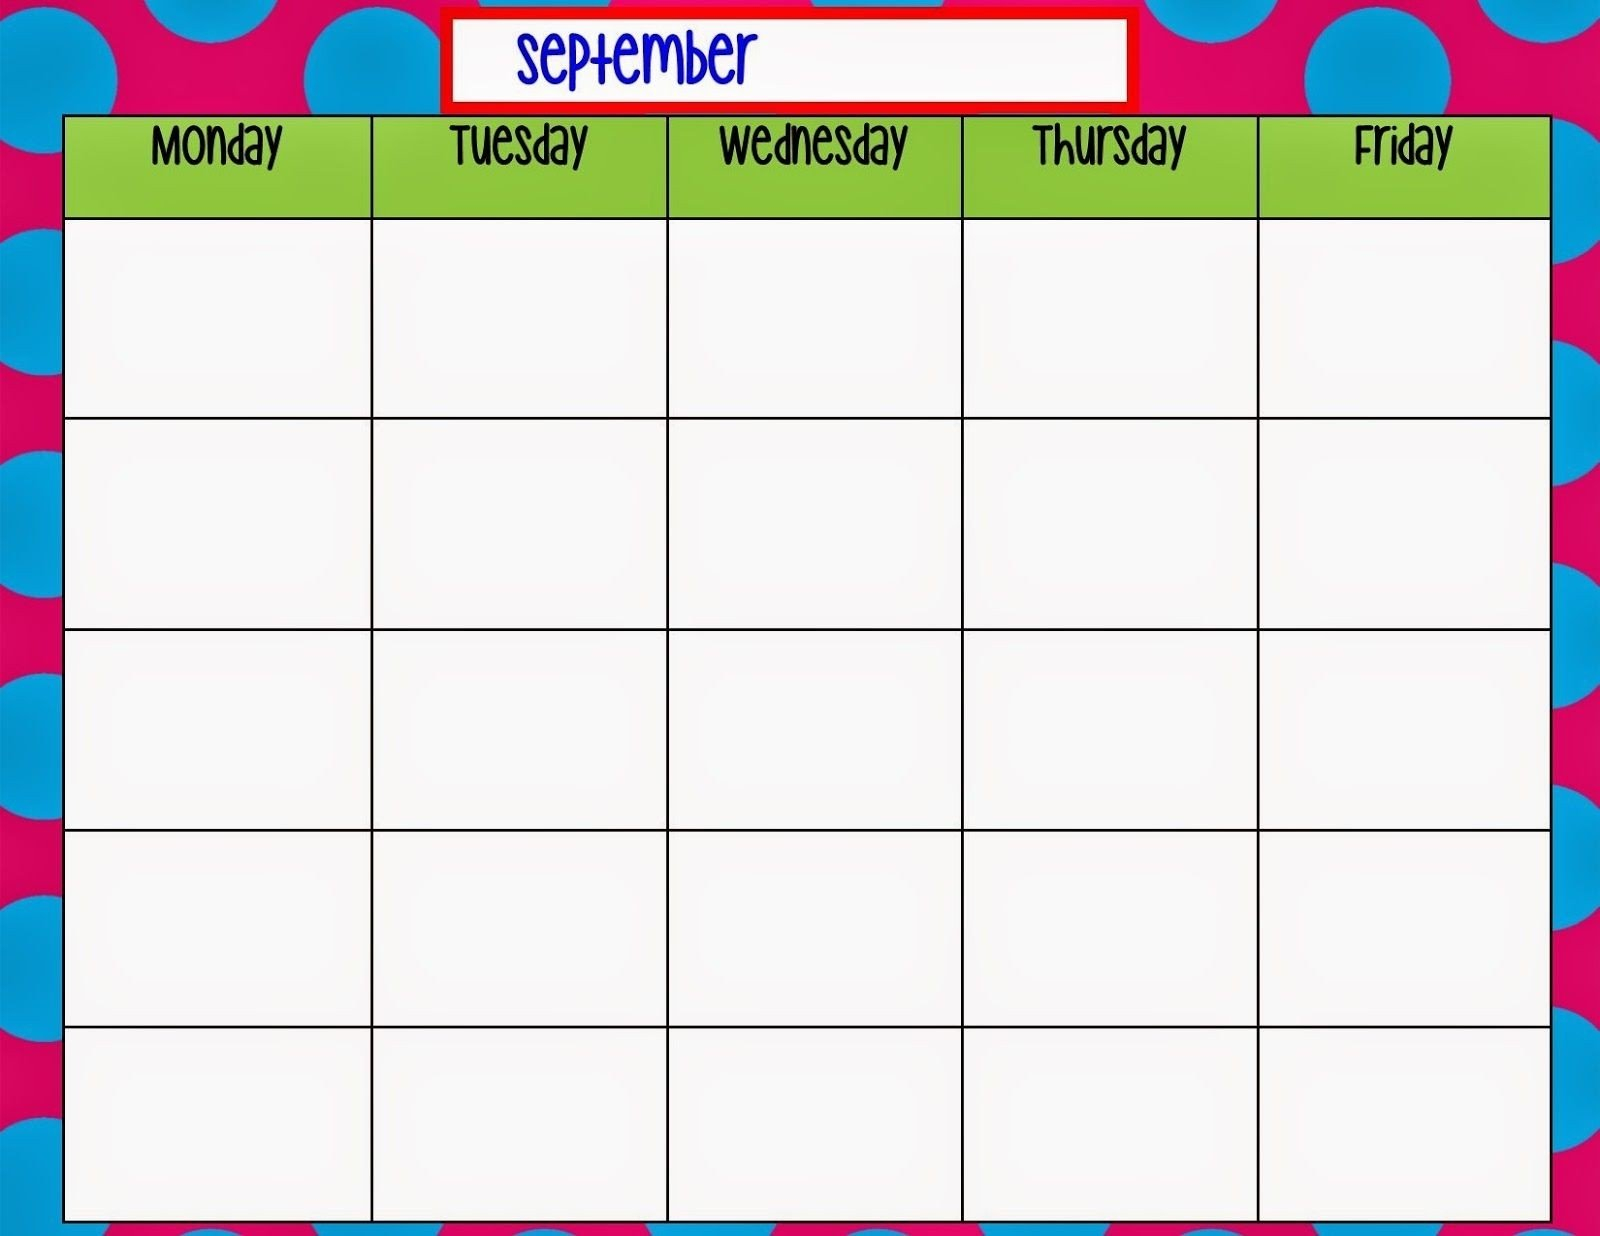 Monday Through Friday Schedule Template | Calendar Monday Through Friday Calendar